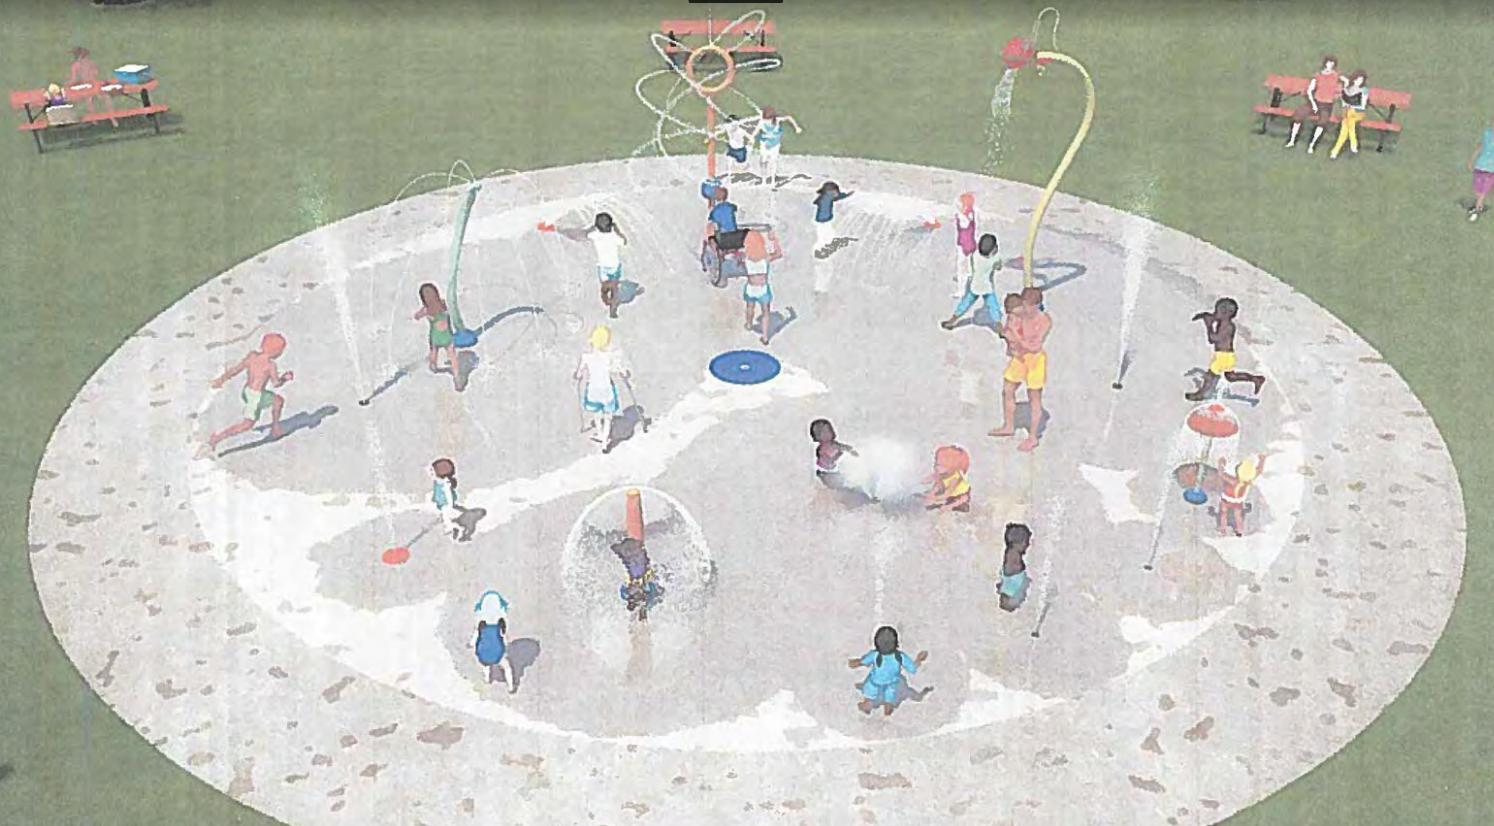 An artist rendering of the planned splash park to be installed near the wading pool in southwest Wadena. Illustration courtesy of Vortex International